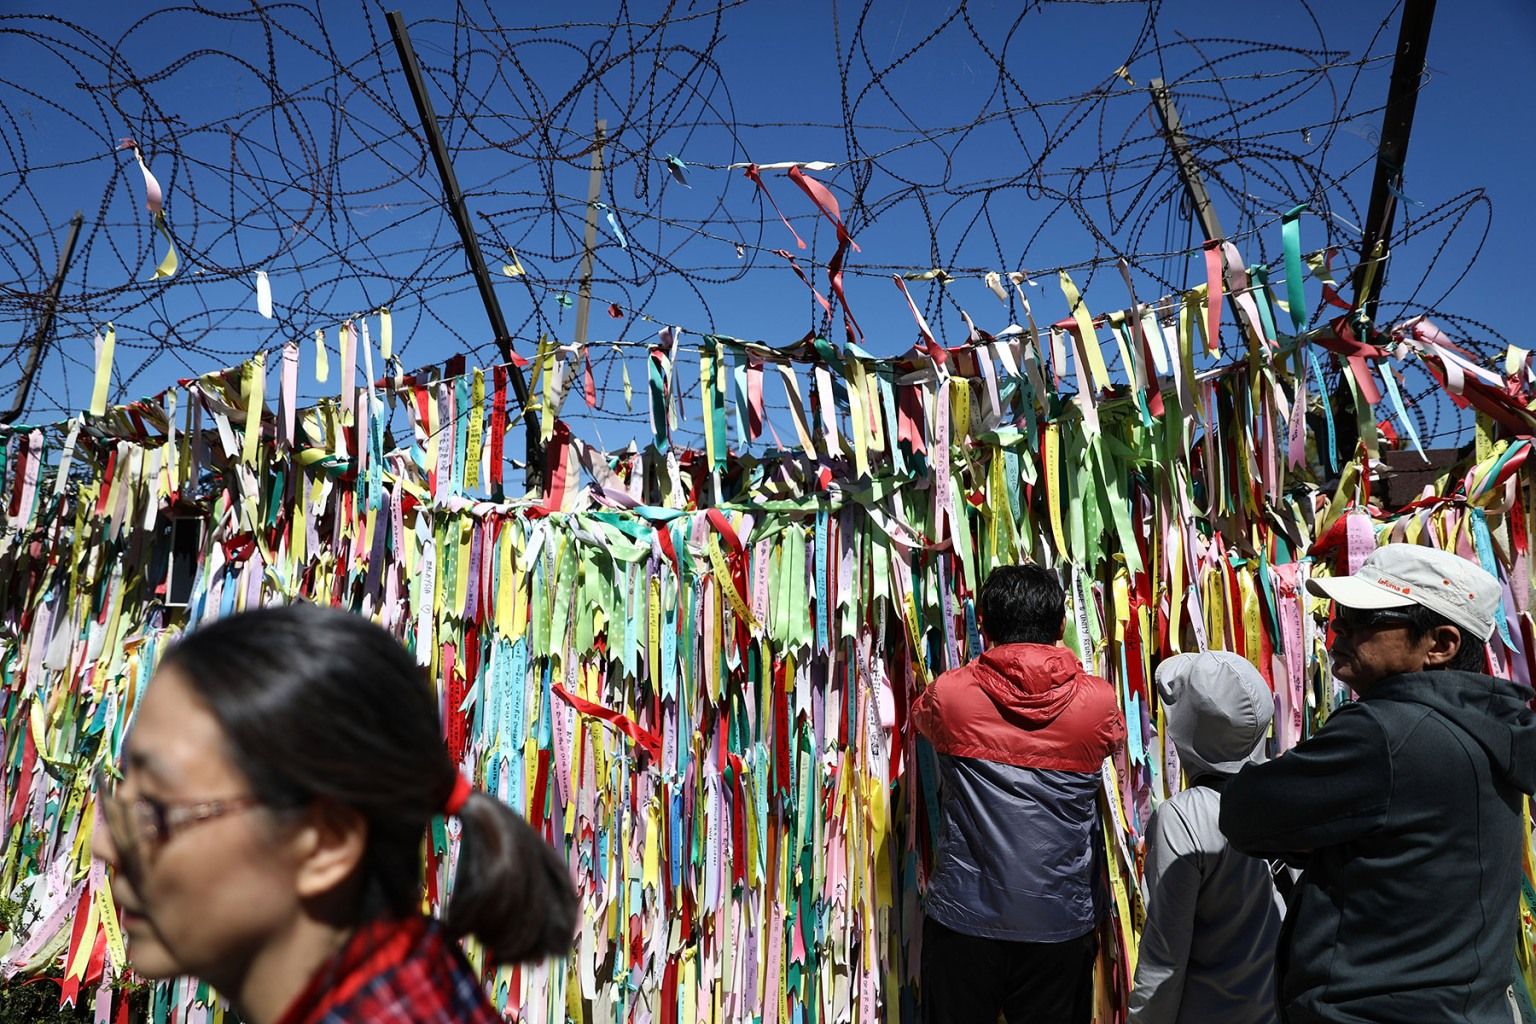 PAJU, SOUTH KOREA - SEPTEMBER 24:  South Koreans hang ribbons wishing for reunification of the two Koreas on the wire fence at the Imjingak Pavilion, near the demilitarized zone (DMZ) separating South and North Korea during Chuseok, the Korean Thanksgiving Day, on Sept. 24. Chung Sung-Jun/Getty Images